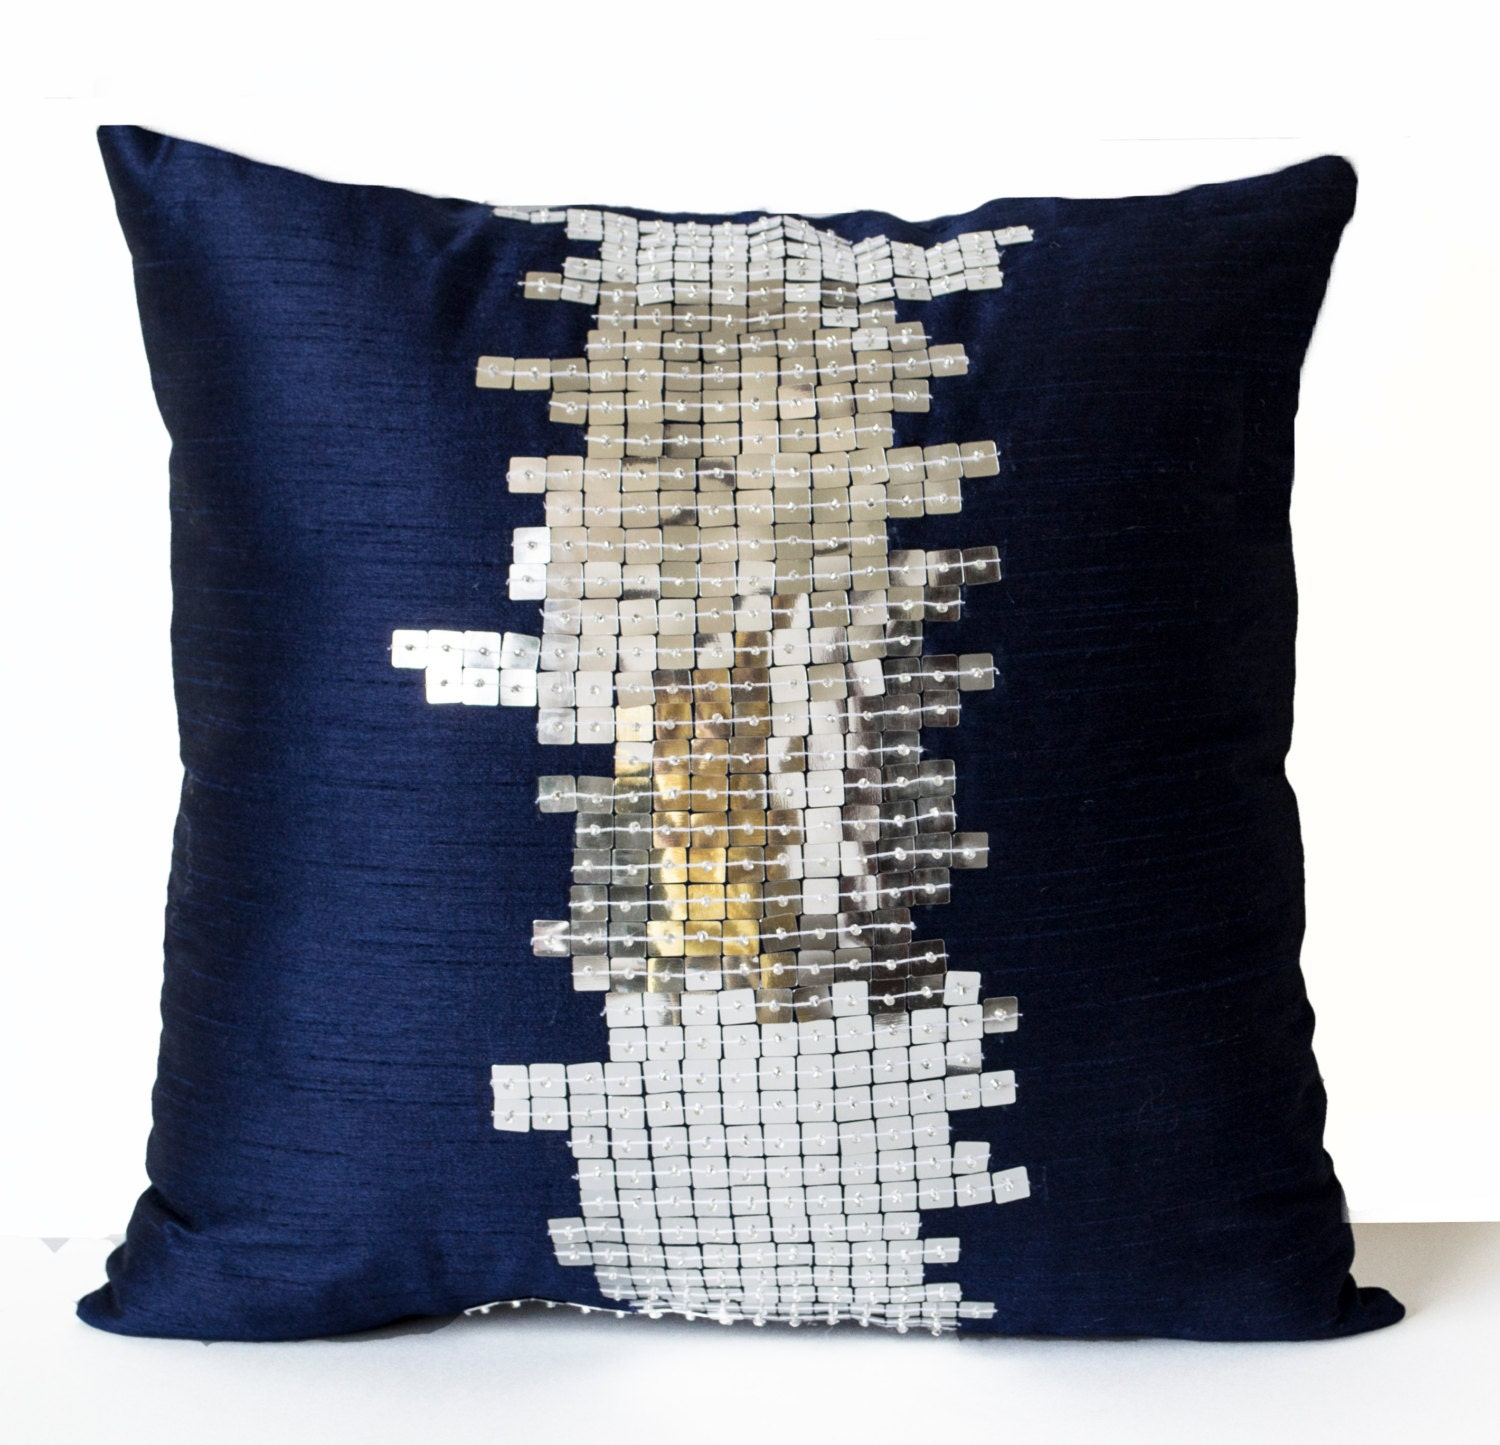 Navy Blue Silk Pillows Navy Silver Pillows Decorative Throw